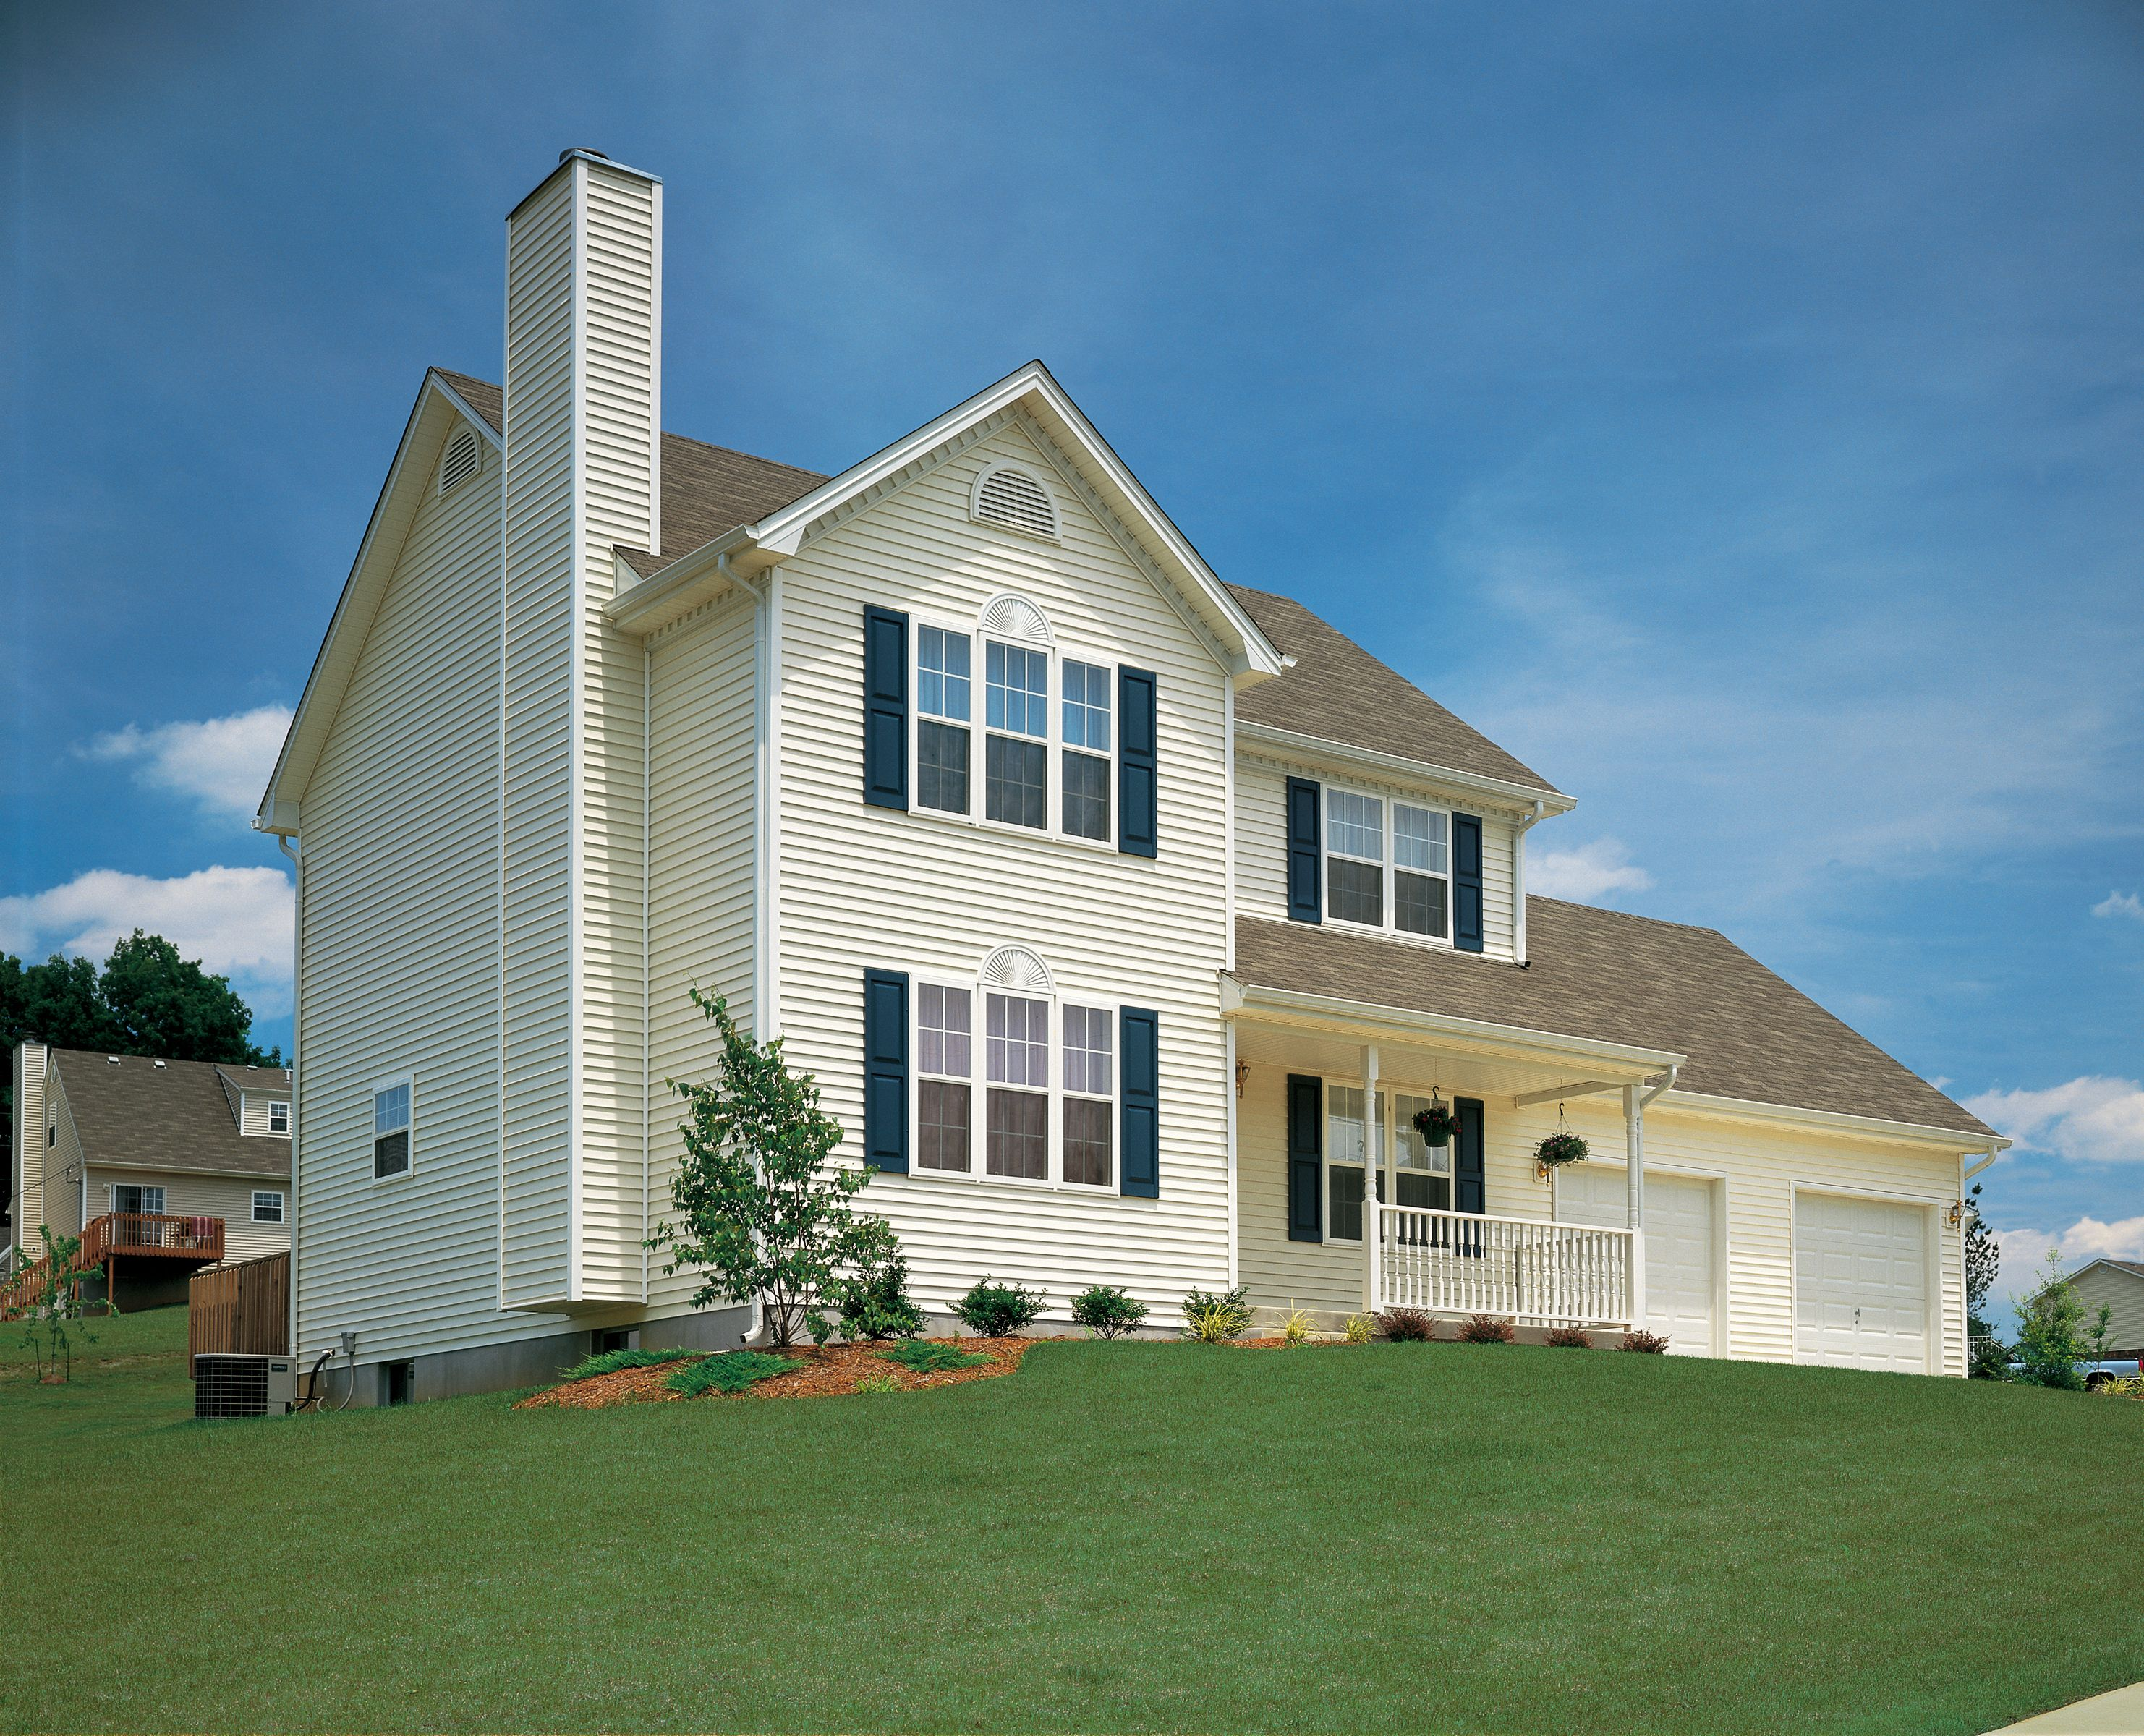 Certainteed siding encore sandstone beige siding for Certainteed siding